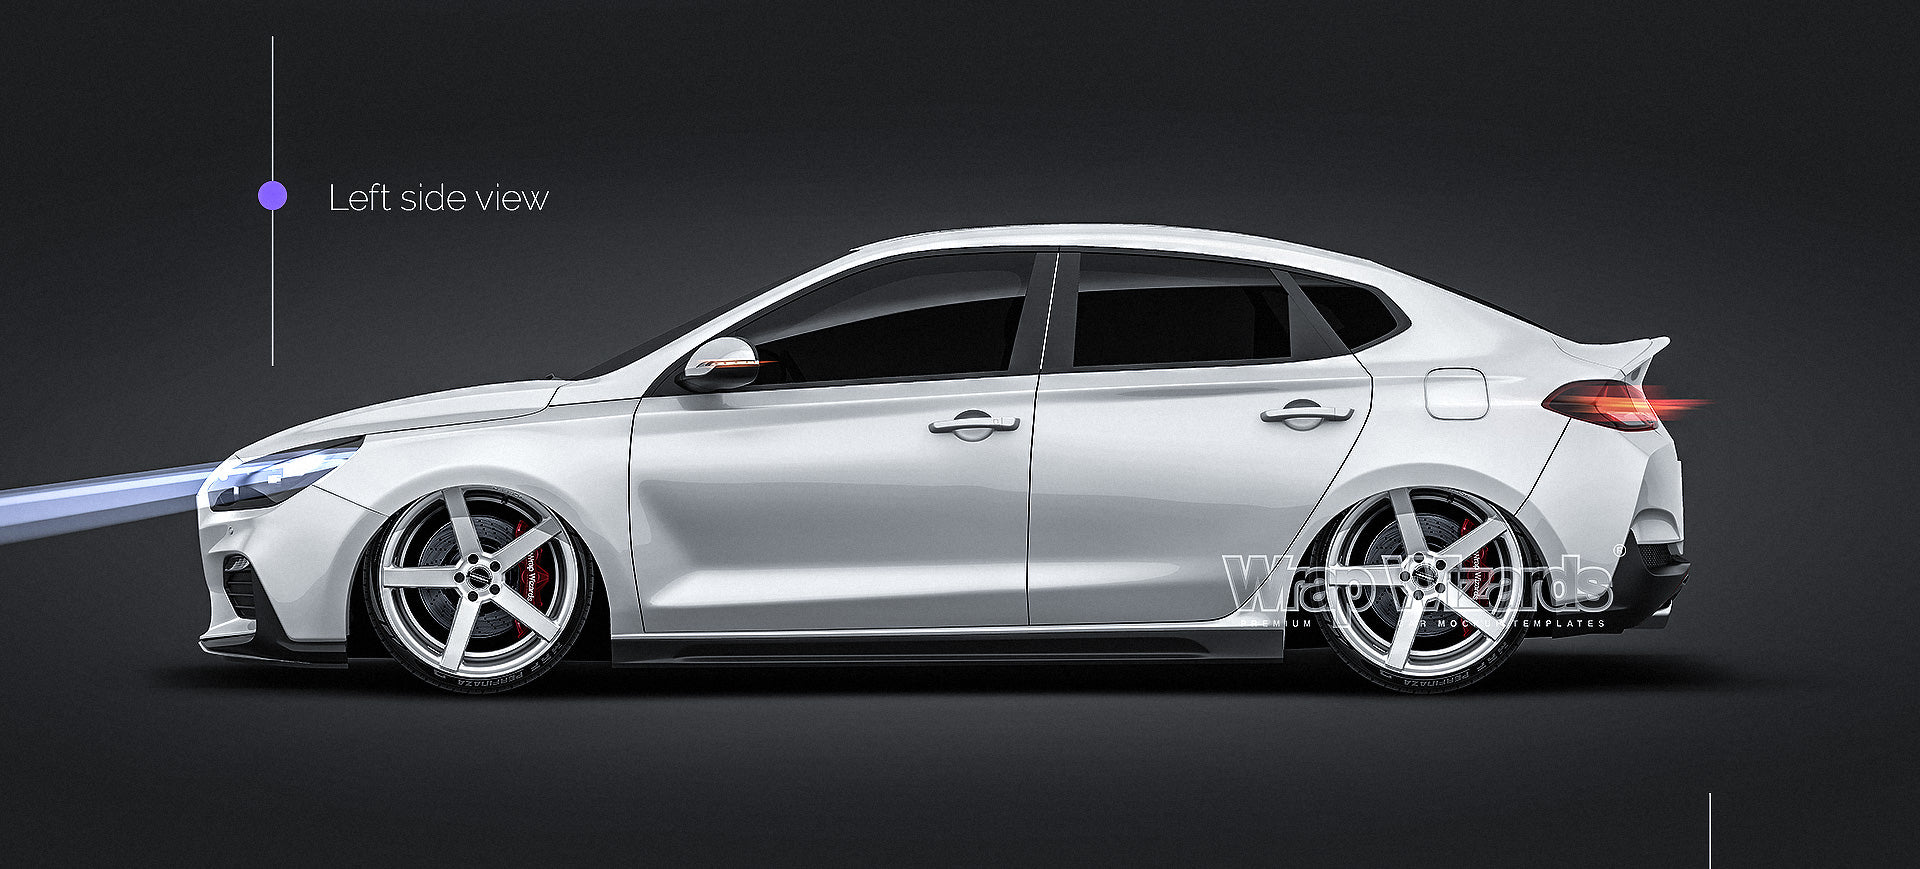 Hyundai I30 N-Line Fastback 2019 all sides Car Mockup Template.psd